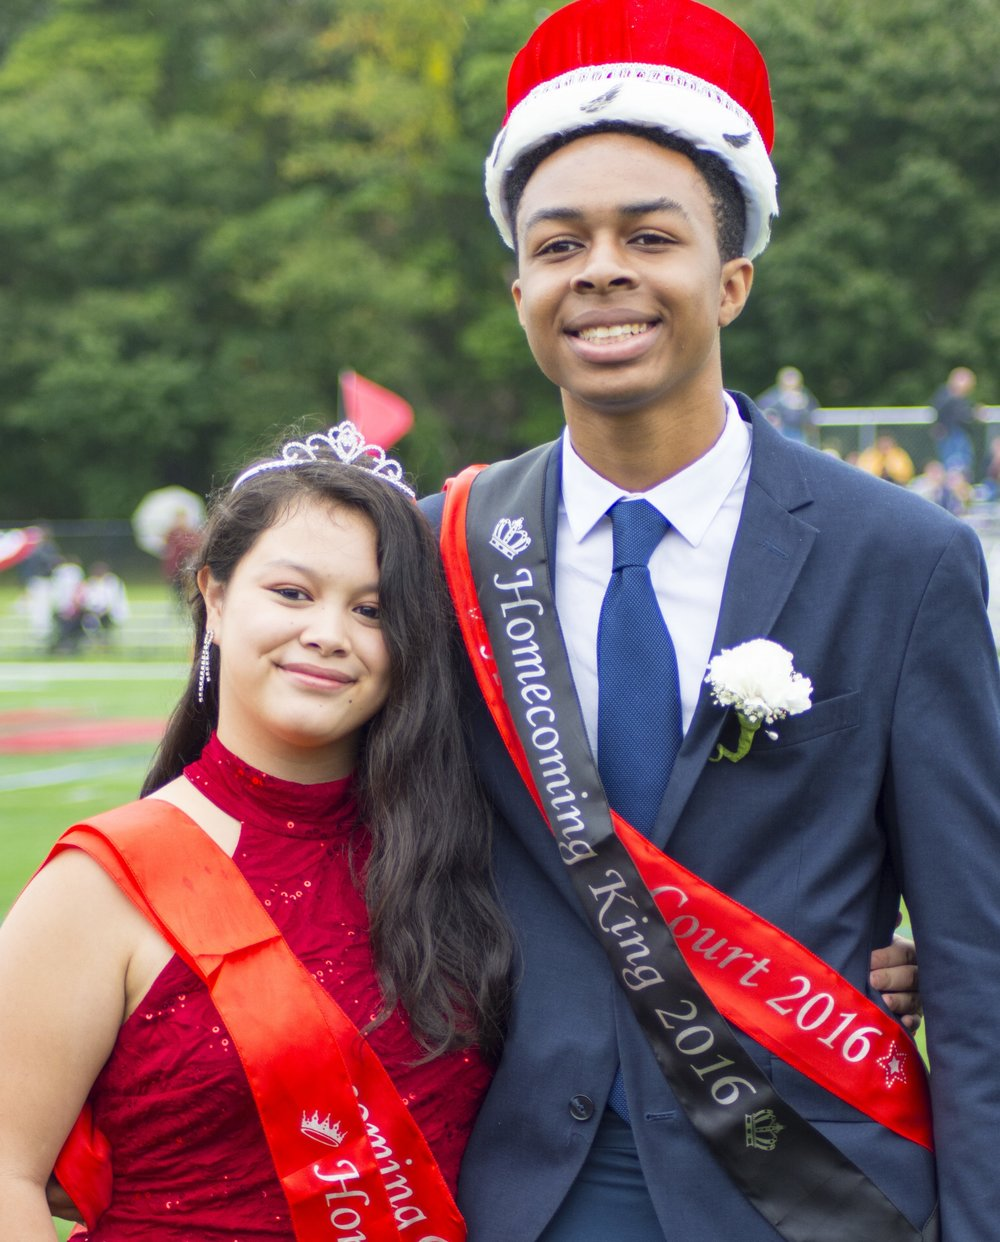 Long Islander News photos/Andrew Wroblewski Caitlin Allsopp and Paul Ibuzor are this year's homecoming queen and king